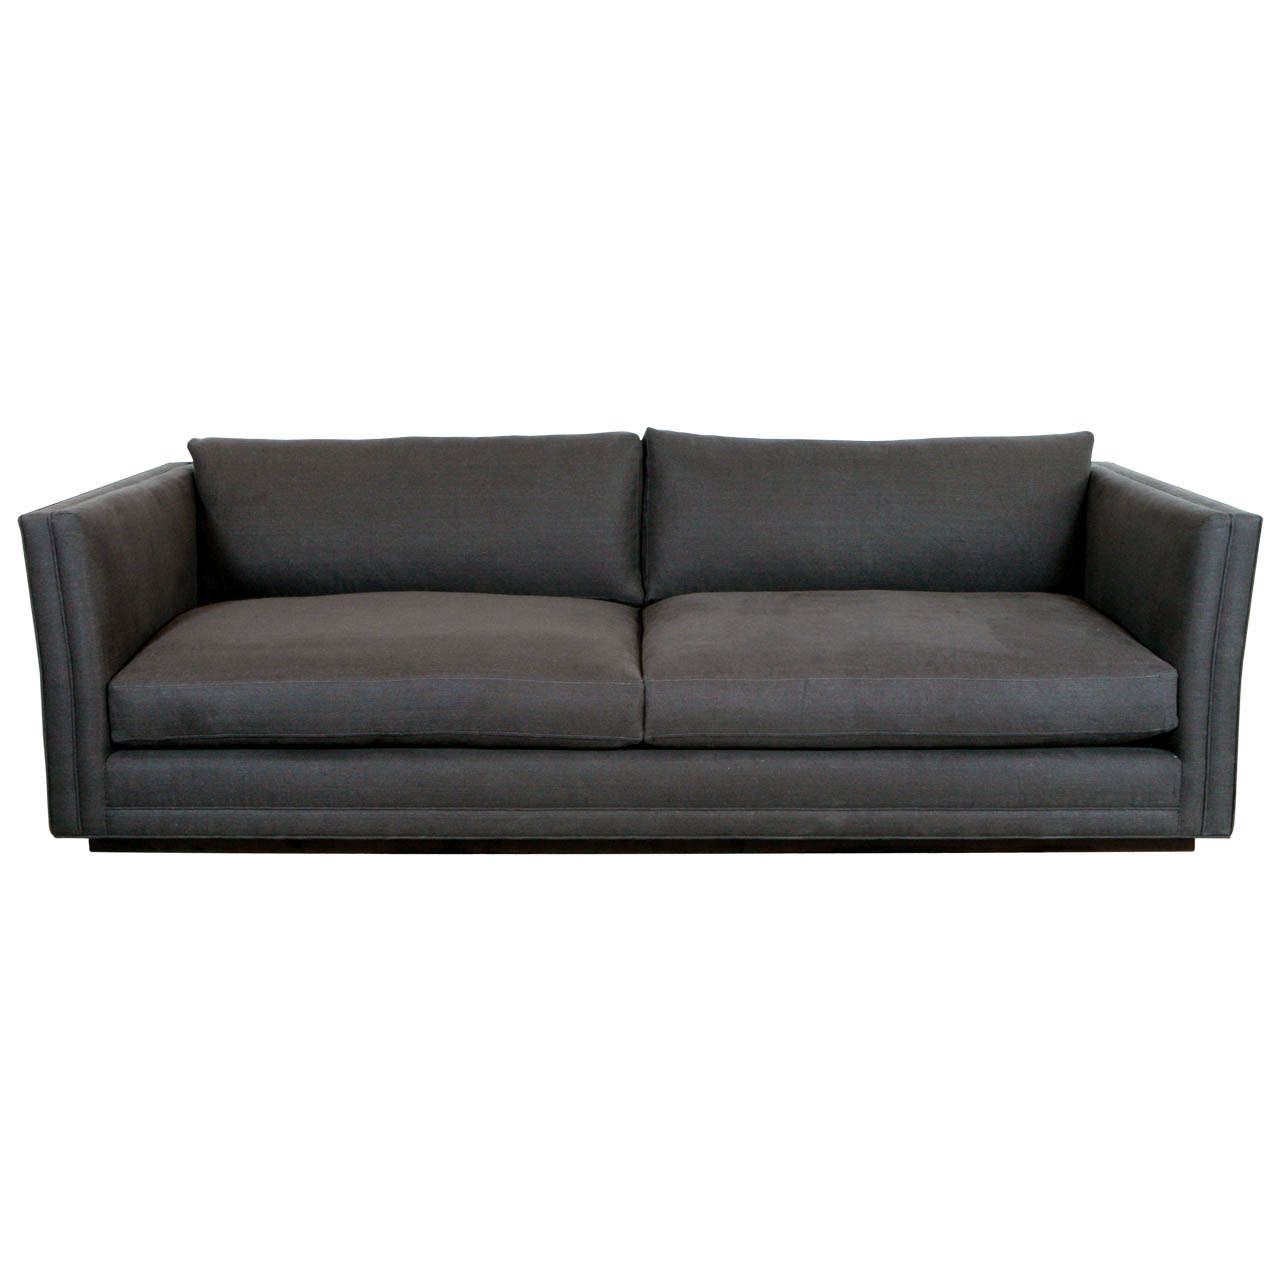 Nk collection modern sofa in grey linen for sale at 1stdibs for Gray sofas for sale